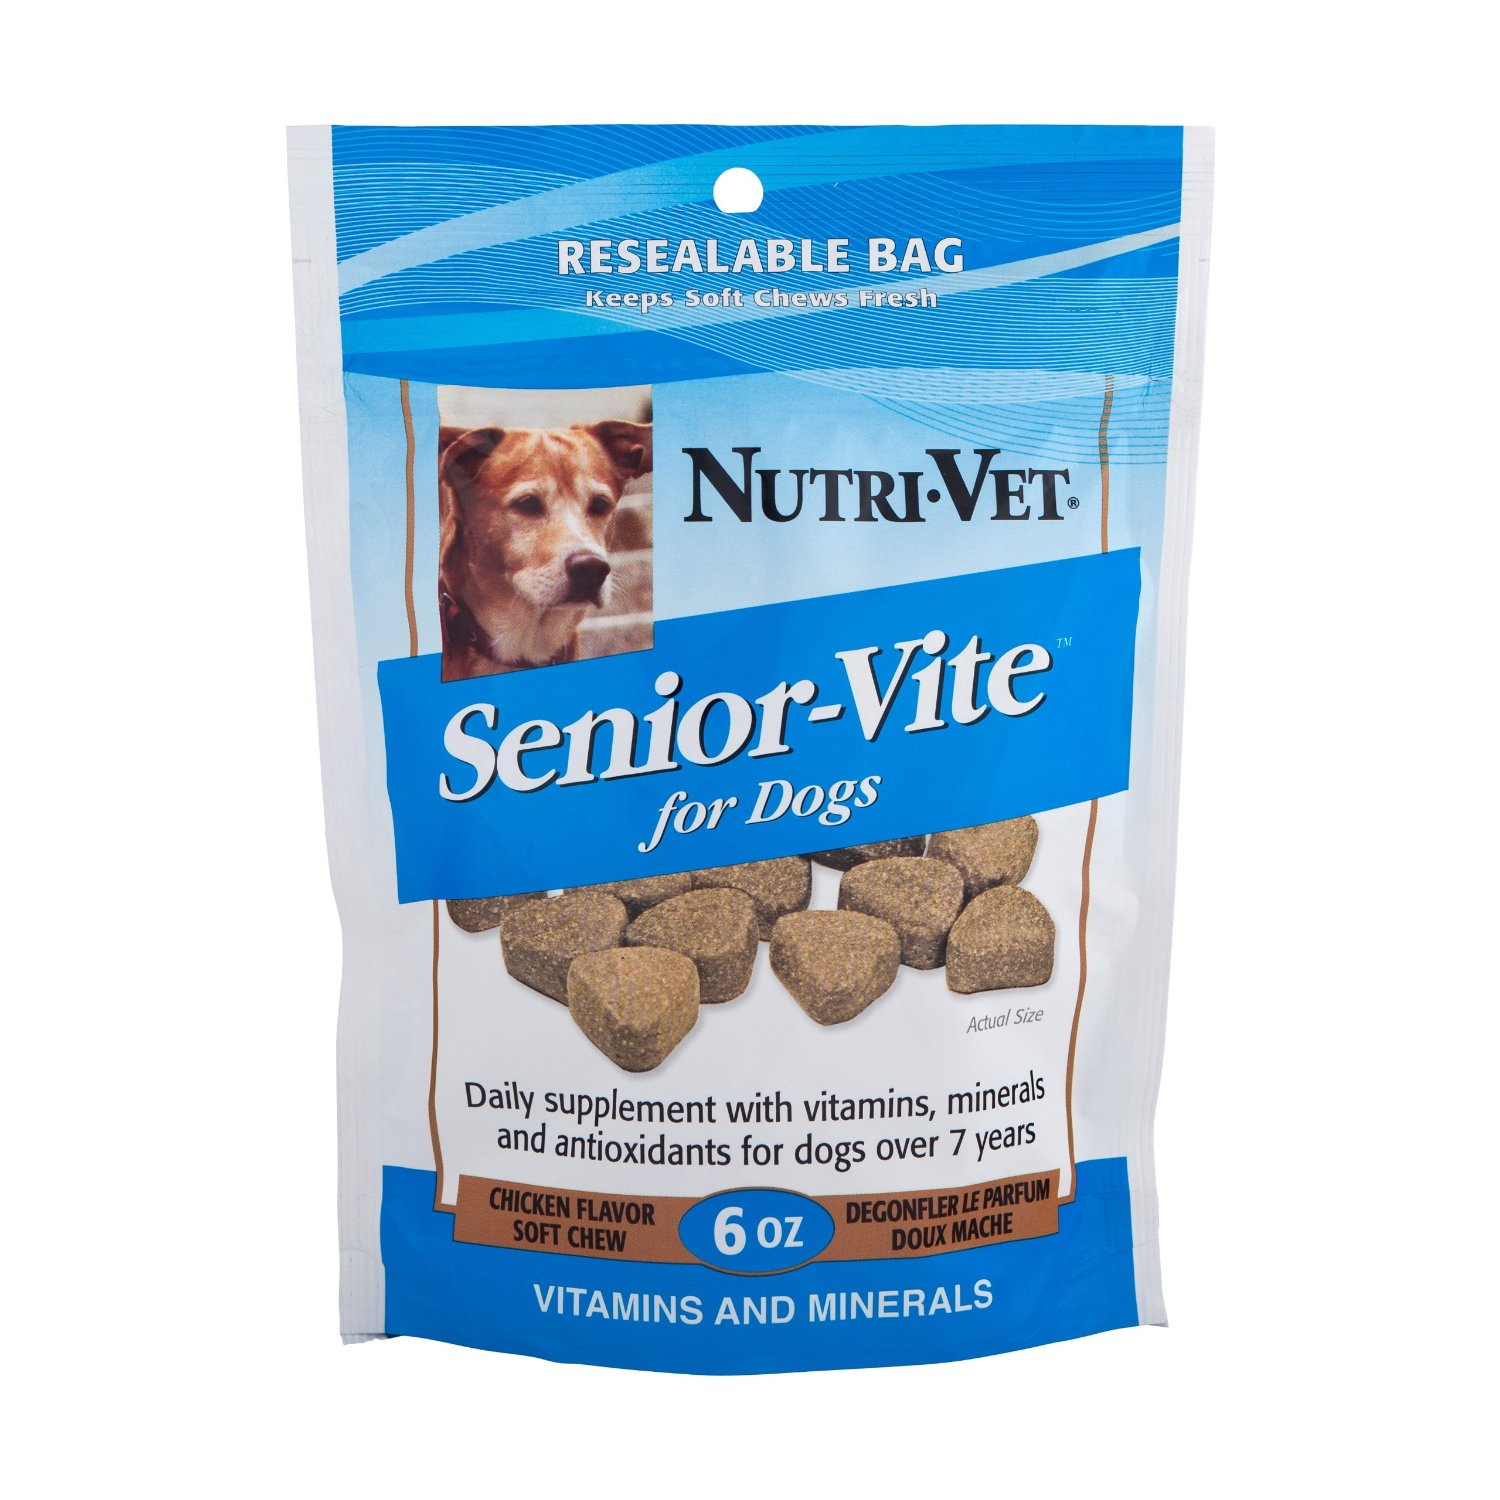 Nutri-Vet Senior-Vite Soft Chews for Dogs